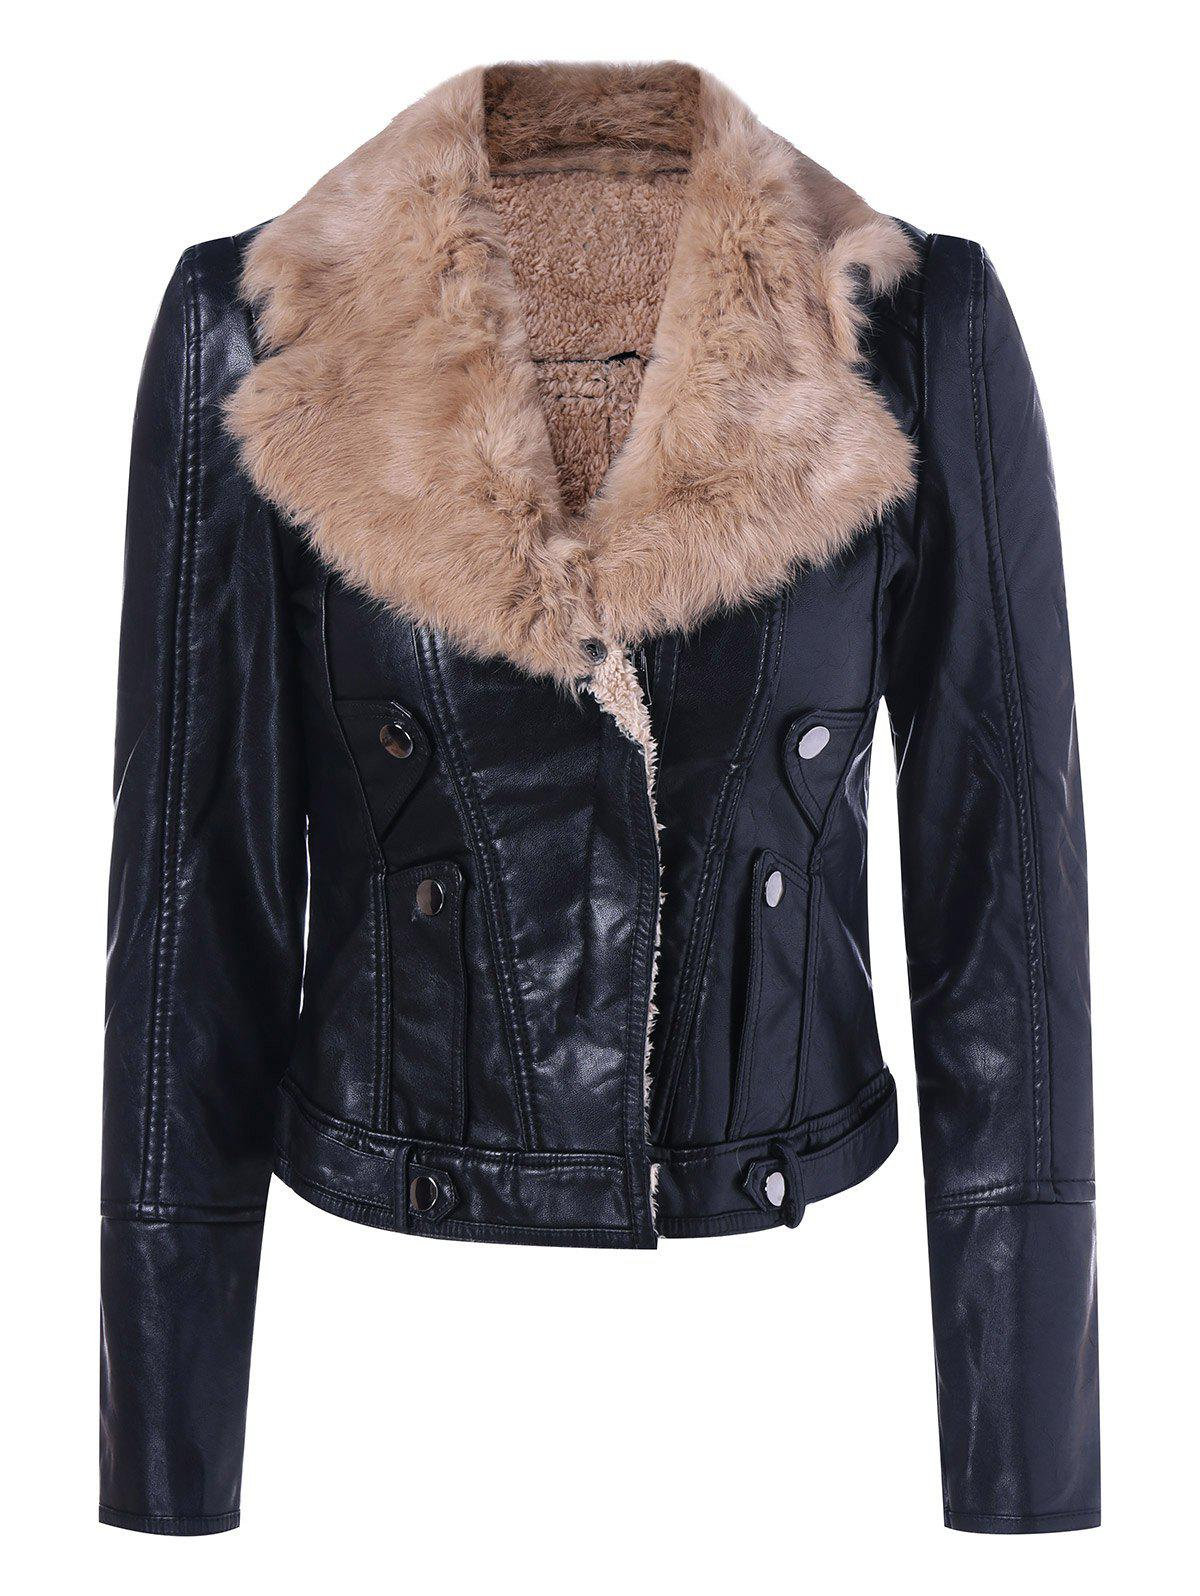 Faux Leather Collar Winter Biker Jacket with Fur Collar - CAMEL M